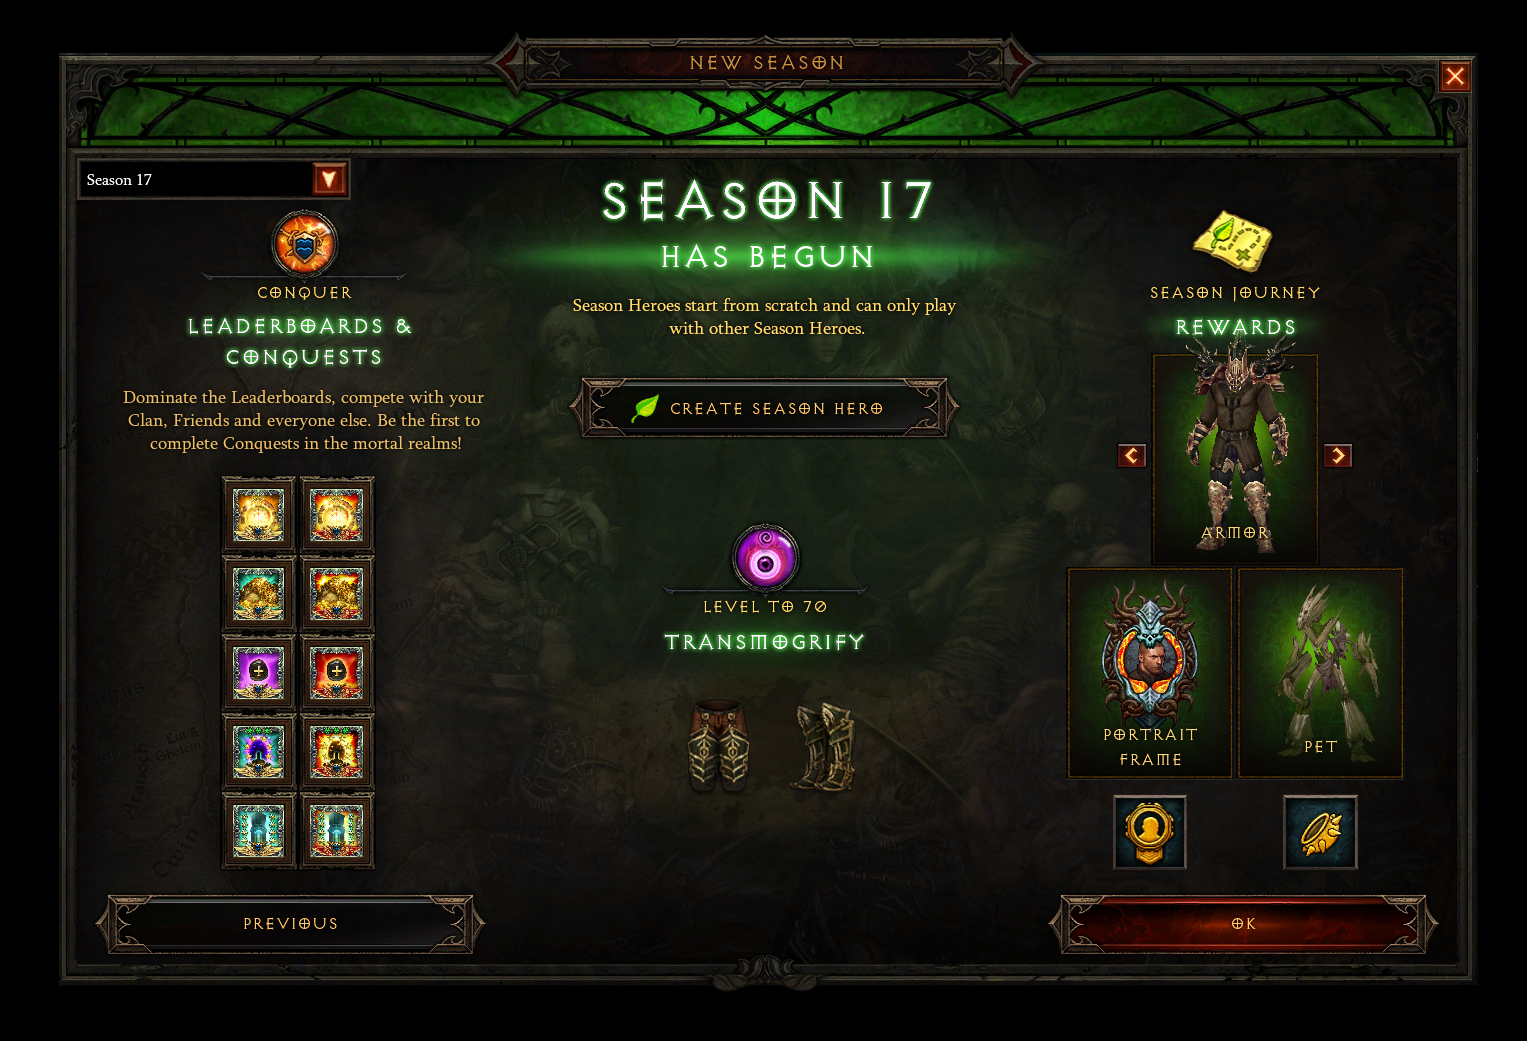 Season 17: The Season of Nightmares is Now Live - Diablo III